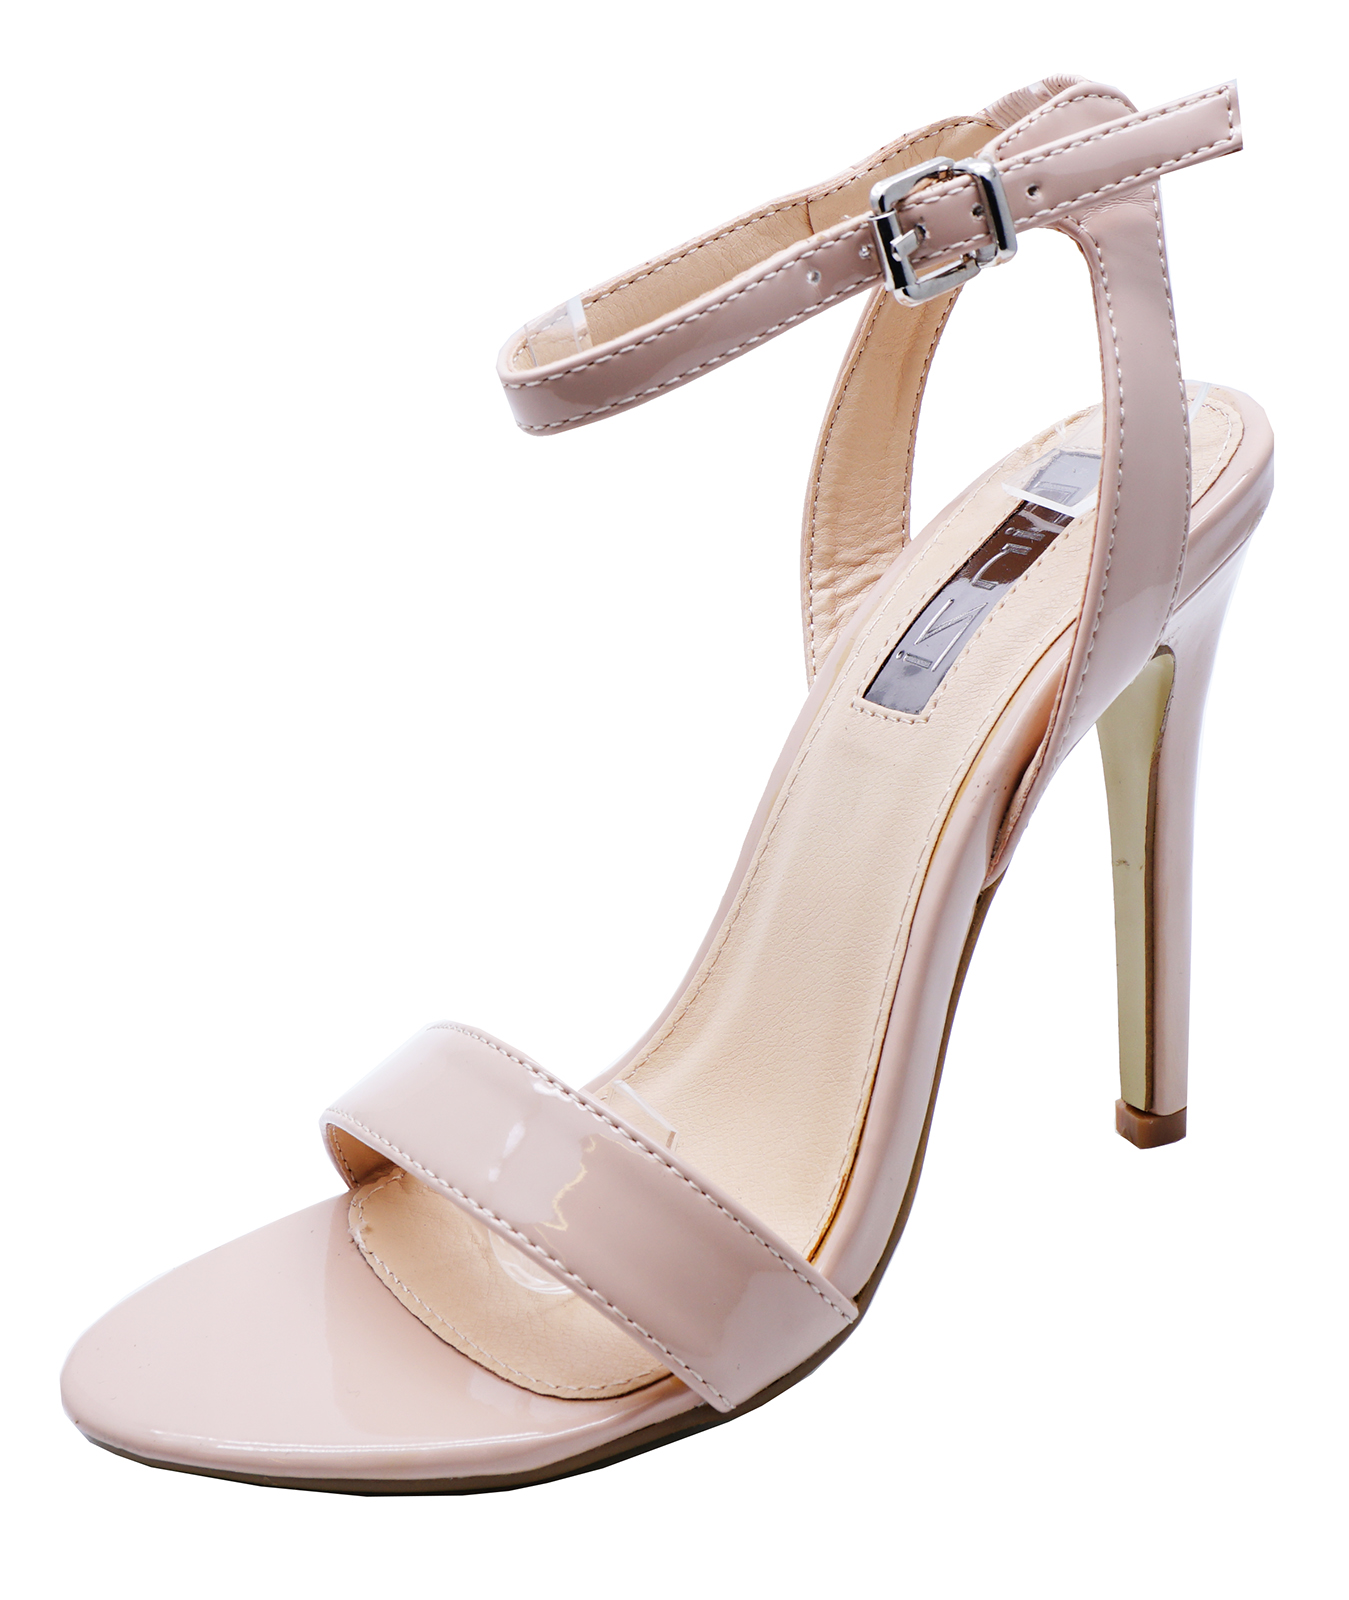 12f340192 Sentinel LADIES NUDE STRAPPY OPEN-TOE BRIDESMAID BRIDE WEDDING PARTY PROM SANDALS  3-8